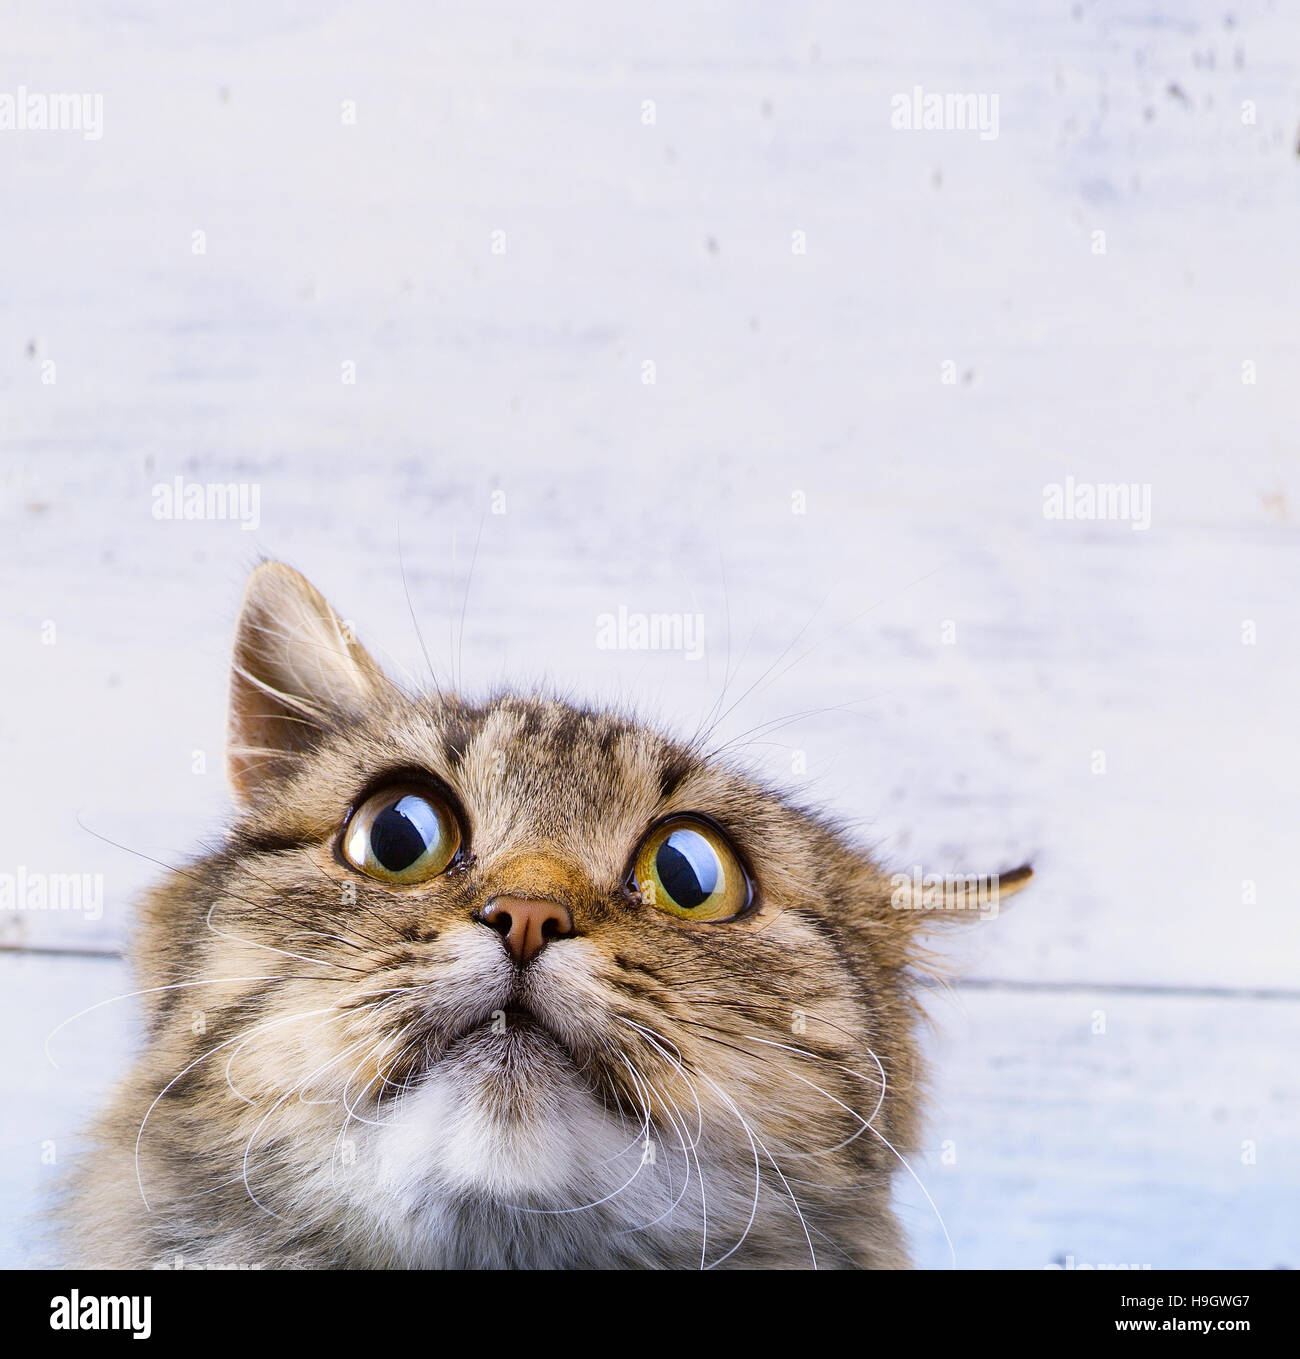 frightened and surprised Gray cat looking up with wide-open eyes on white background - Stock Image